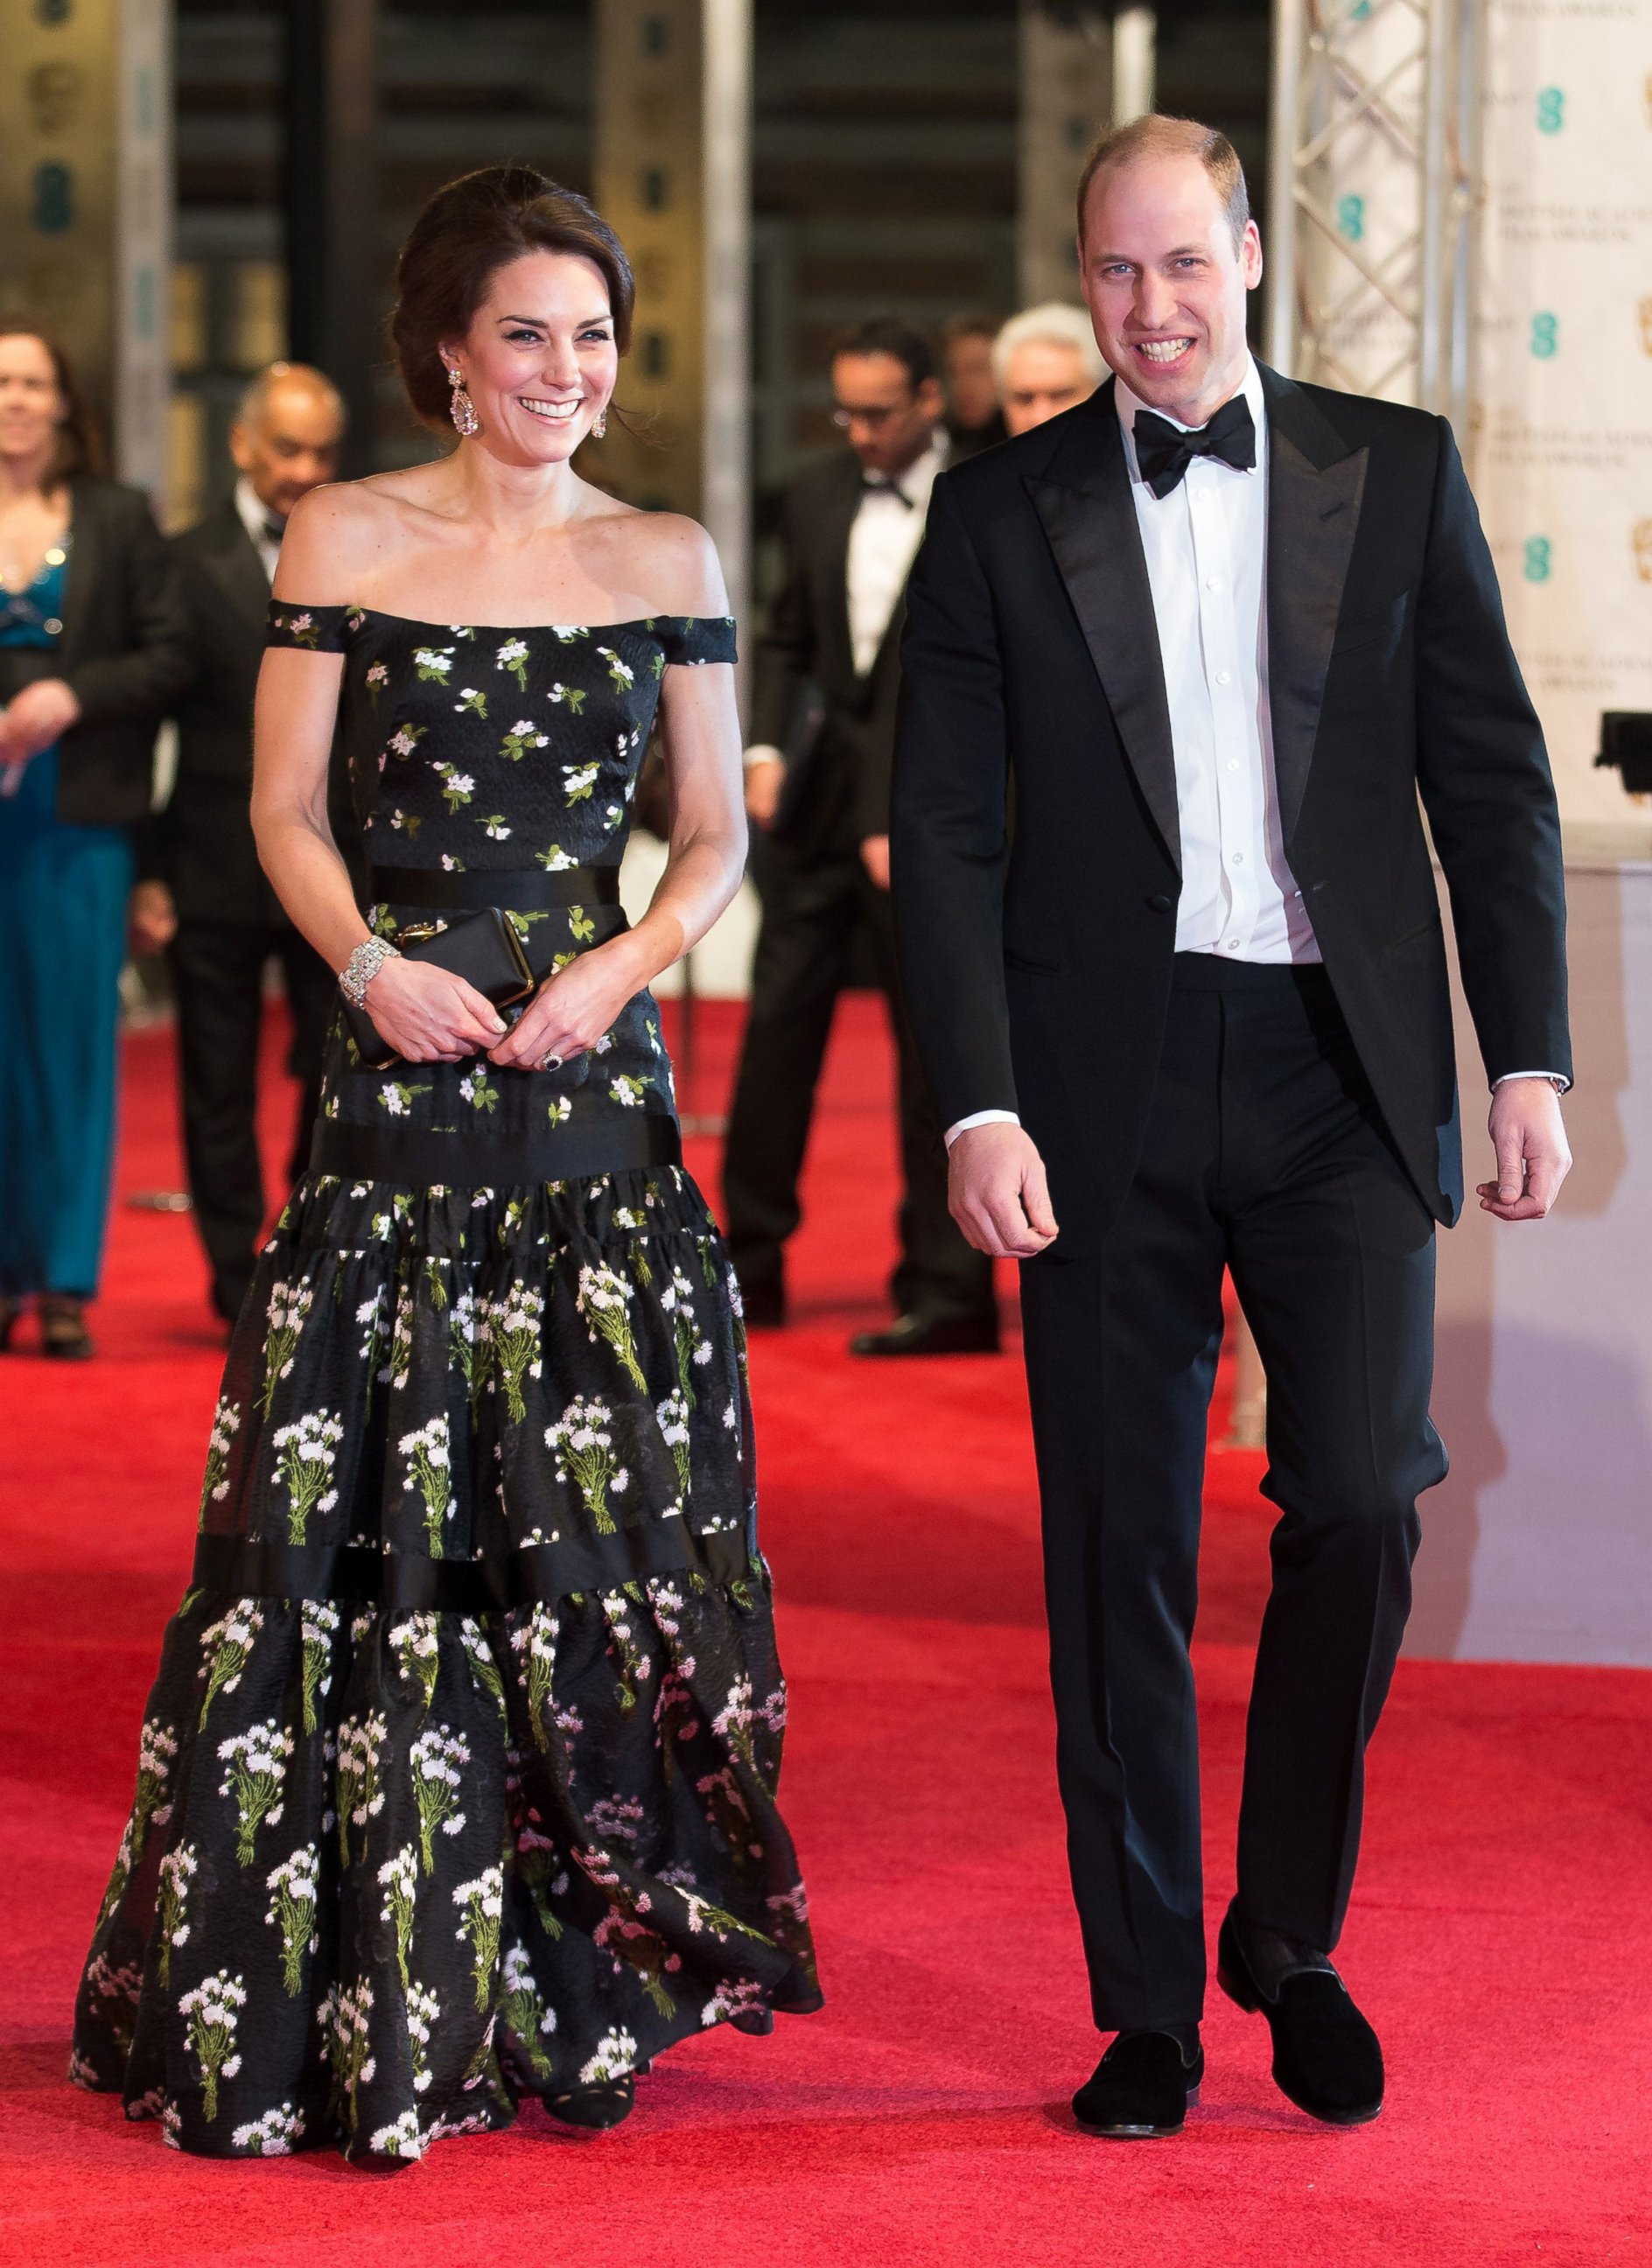 Prince William and Duchess Kate Attend the BAFTAs